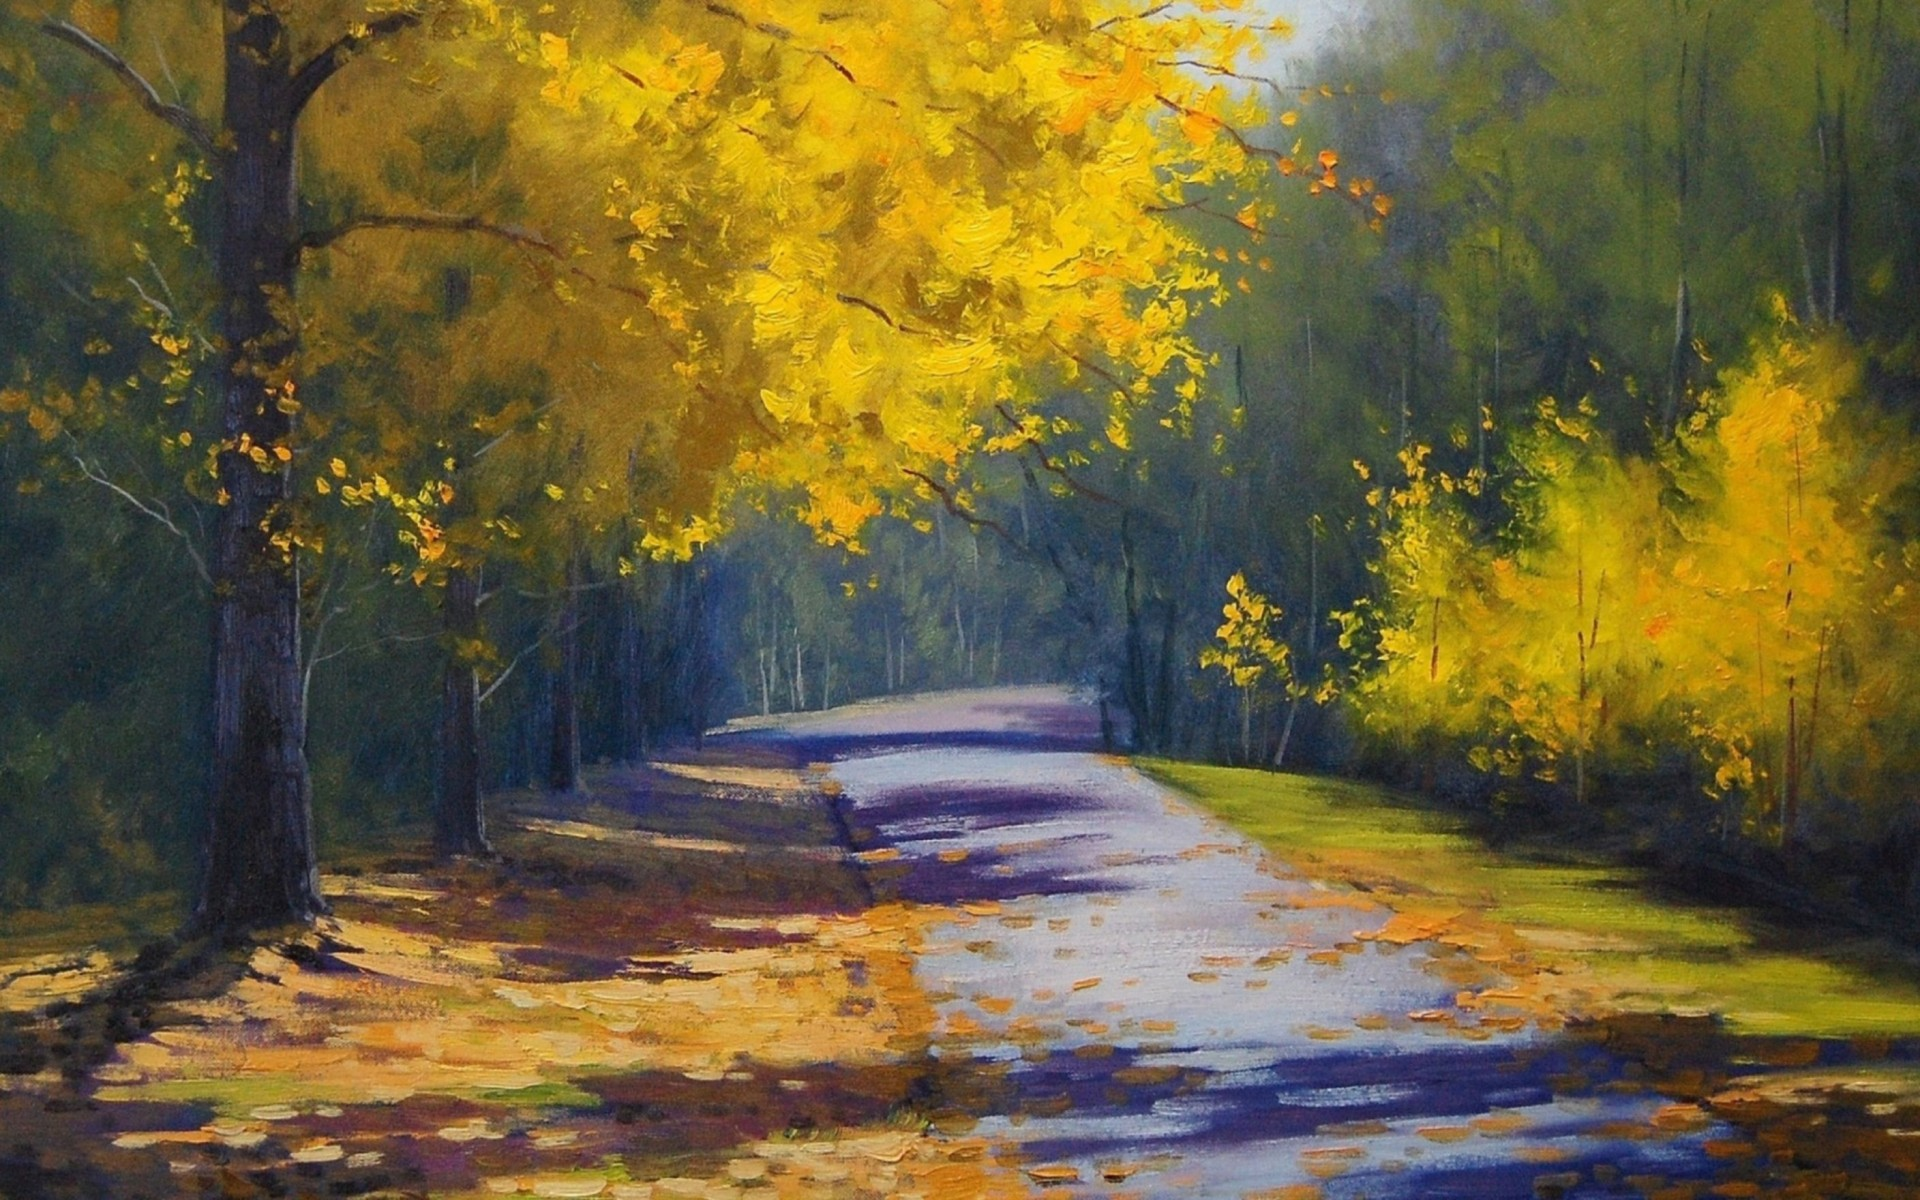 Road Trees Art Painting Wallpaper